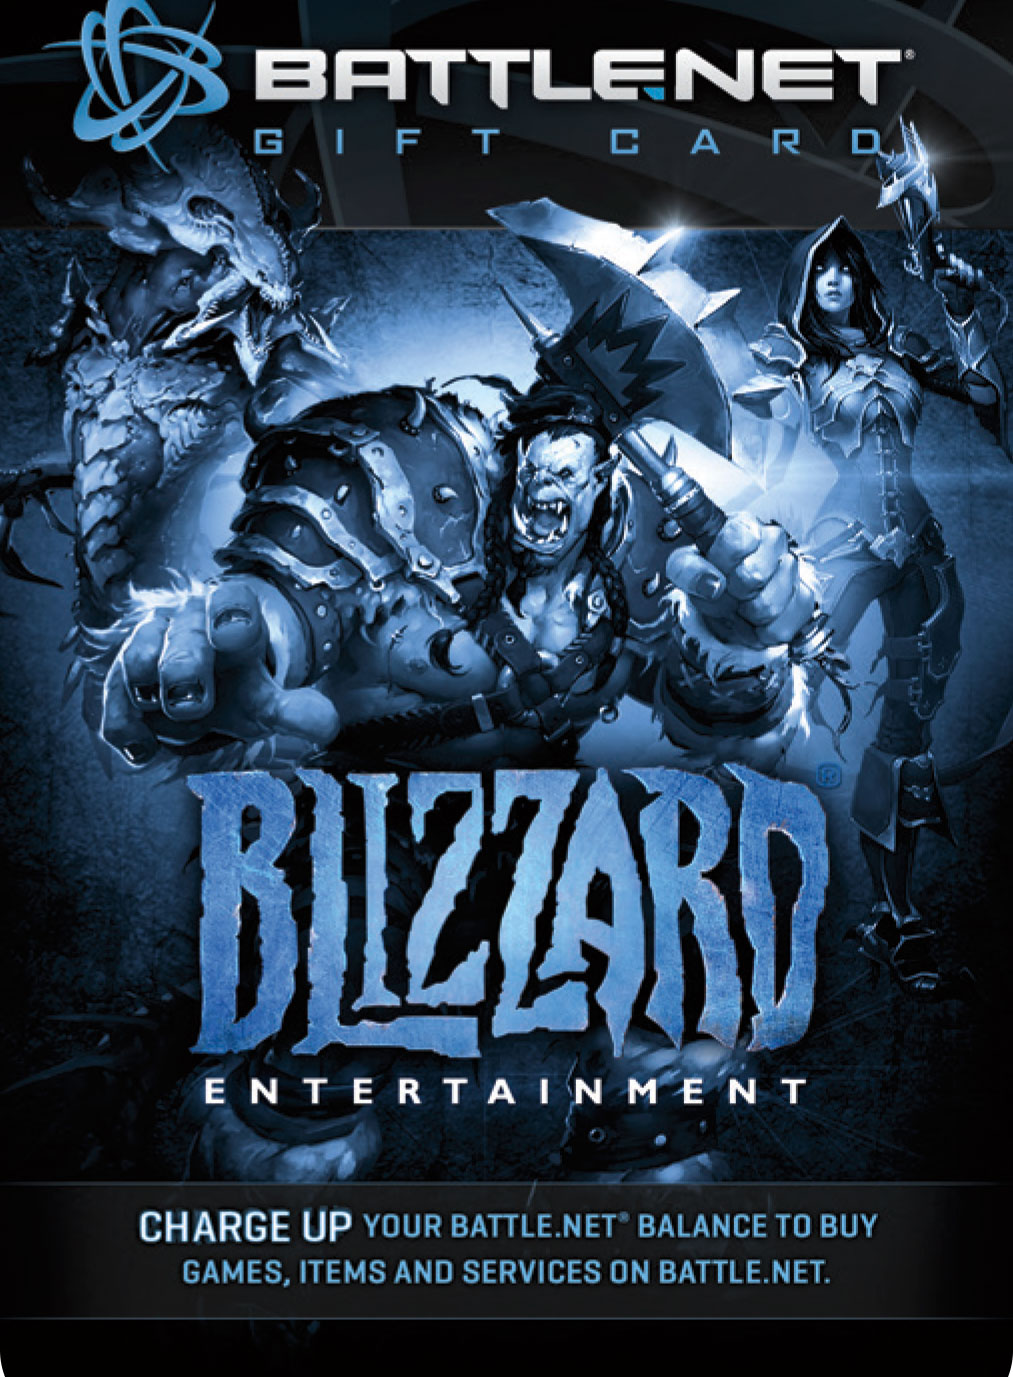 $20 Battle.net Store Gift Card Balance - Blizzard Entertainment [Digital Code] [Online Game - Card Entertainment